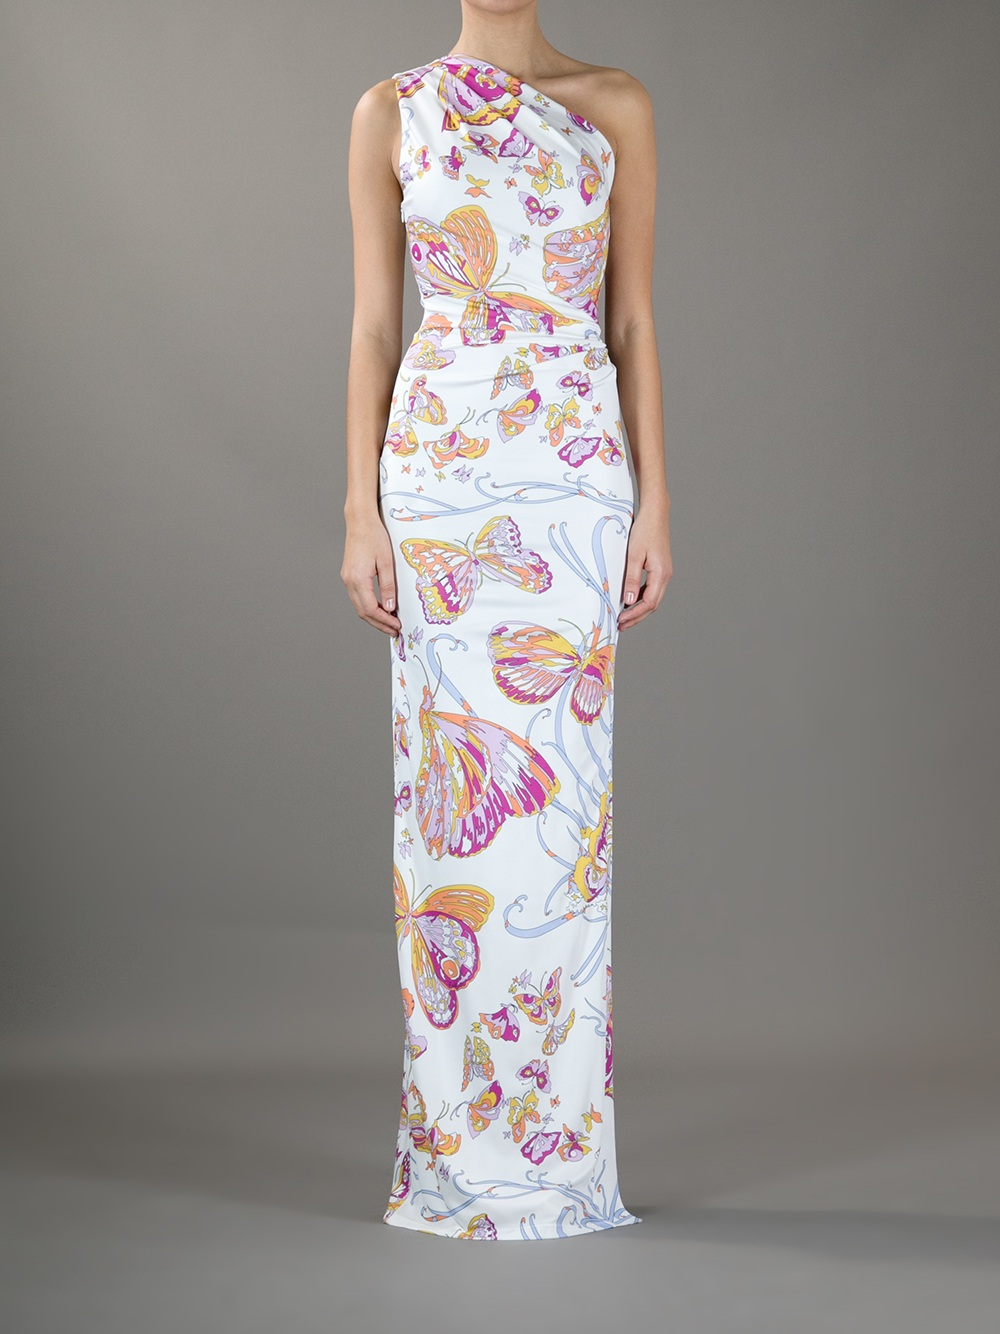 Emilio Pucci One-Shoulder Butterfly Maxi Dress in White - Lyst 066777fb5f